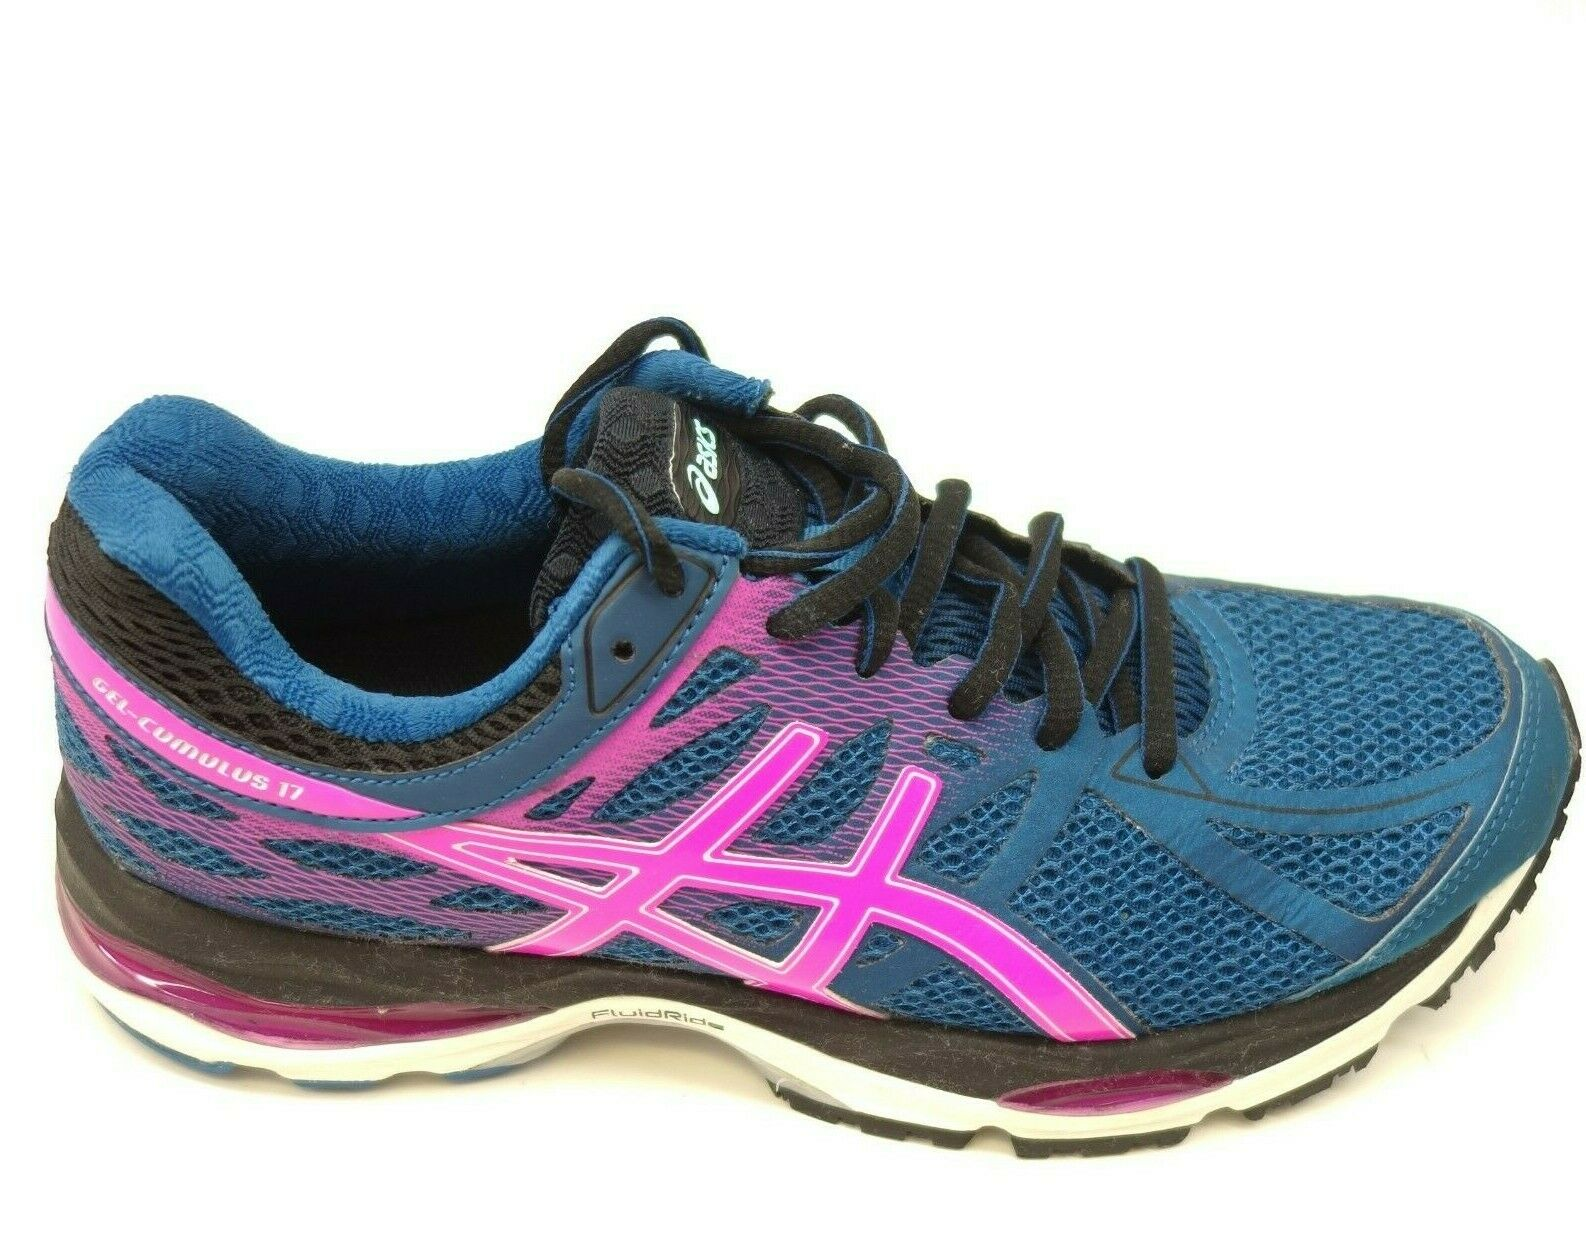 Asics Gel Cumulus 17 US 7.5 EU 39 Teal Athletic Running Training Womens shoes